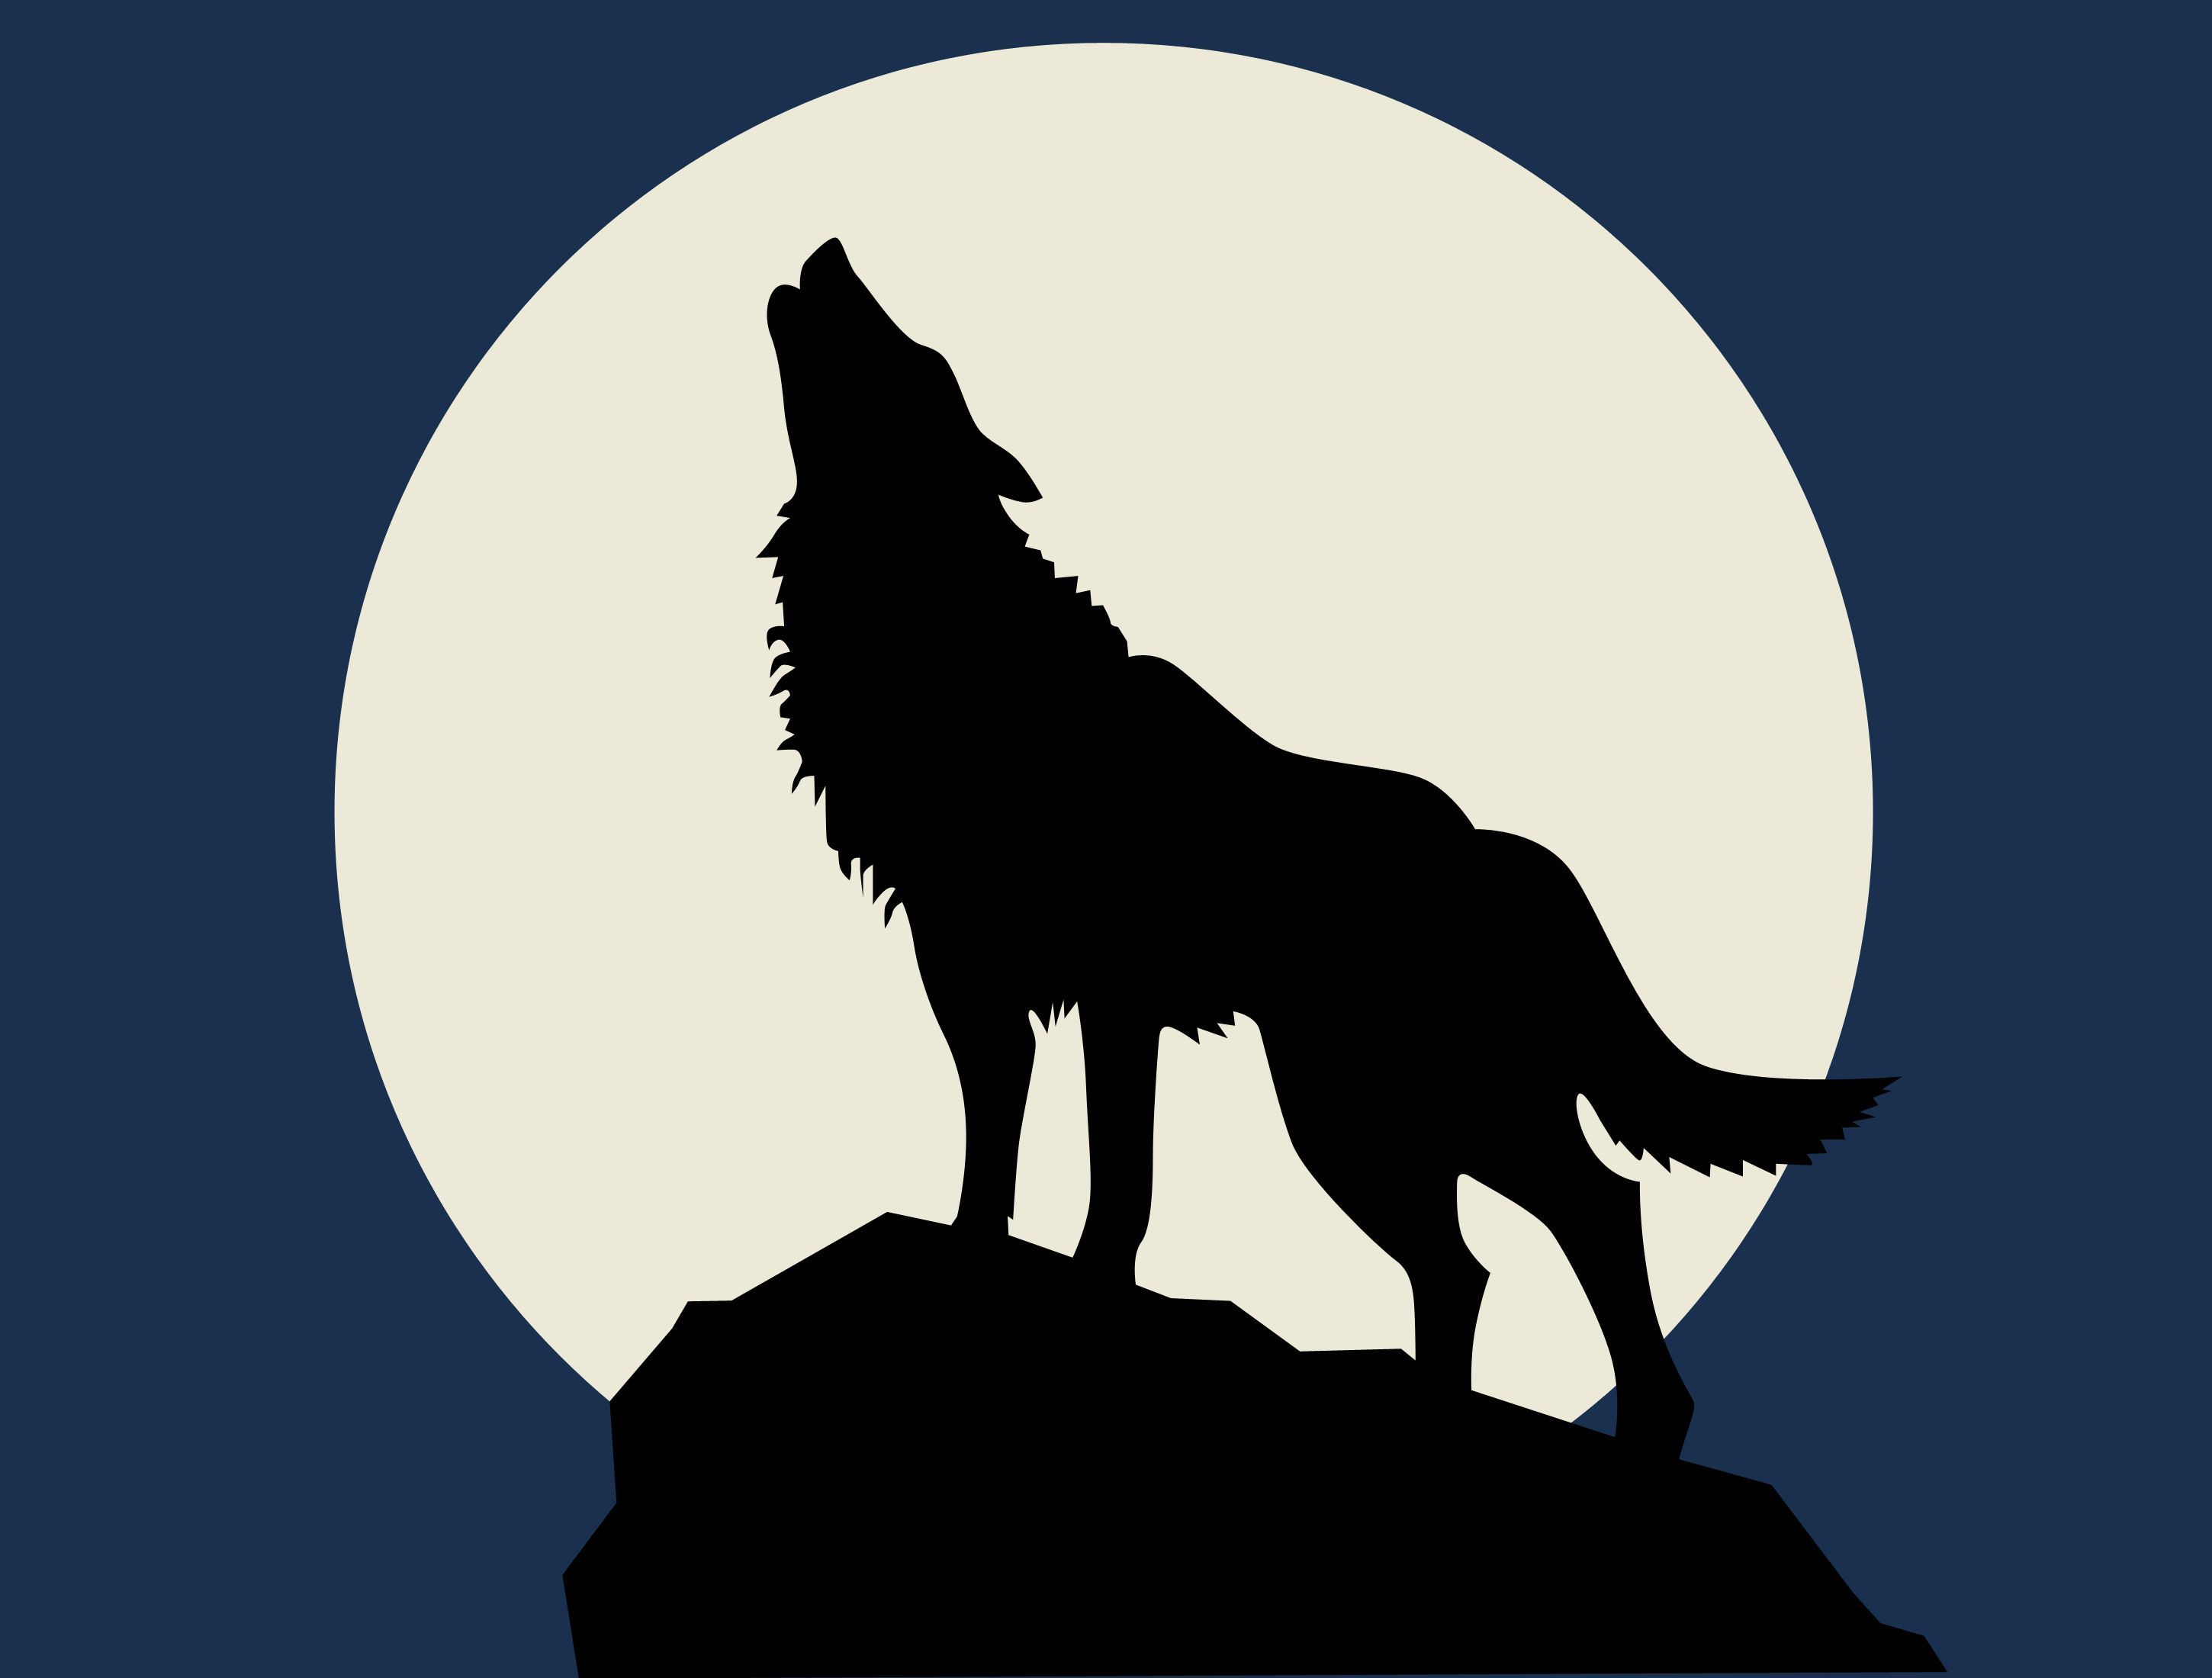 Pin By Jennifer Lash On Painting In 2020 Wolf Howling At Moon Wolf Silhouette Wolf Howling